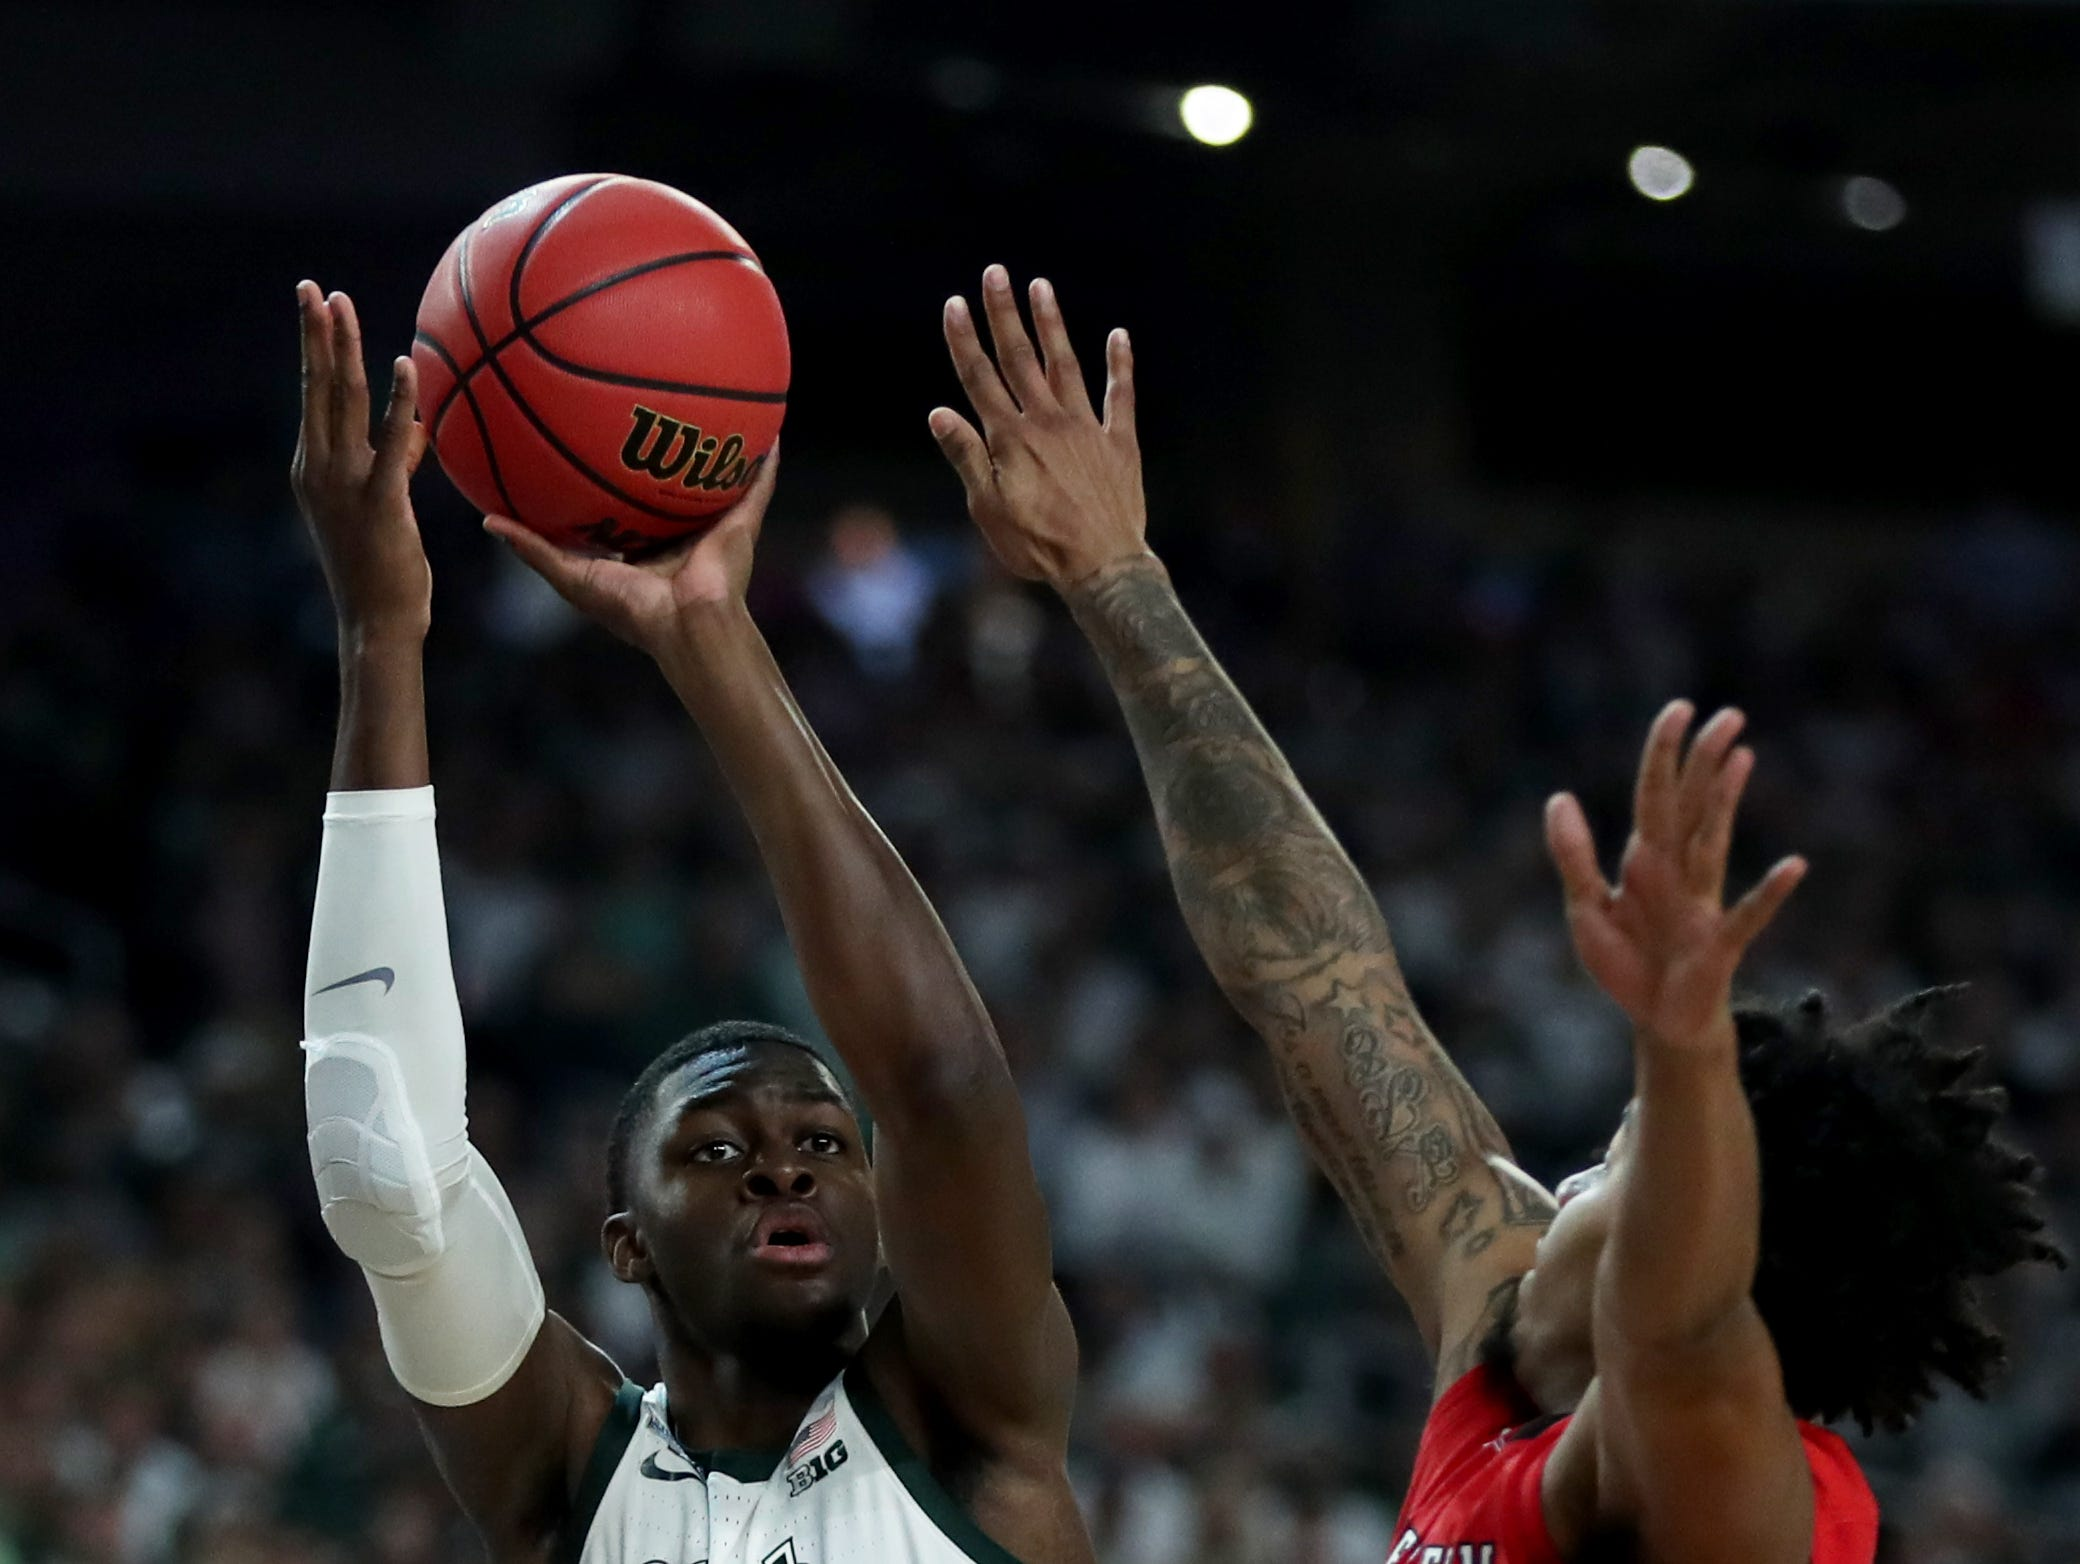 Michigan State forward Gabe Brown (13) shoots the ball over guard Kyler Edwards (0) in the first half of the Spartan's Final Four game at U.S. Bank Stadium in Minneapolis, Minnesota on Saturday, April 06, 2019.